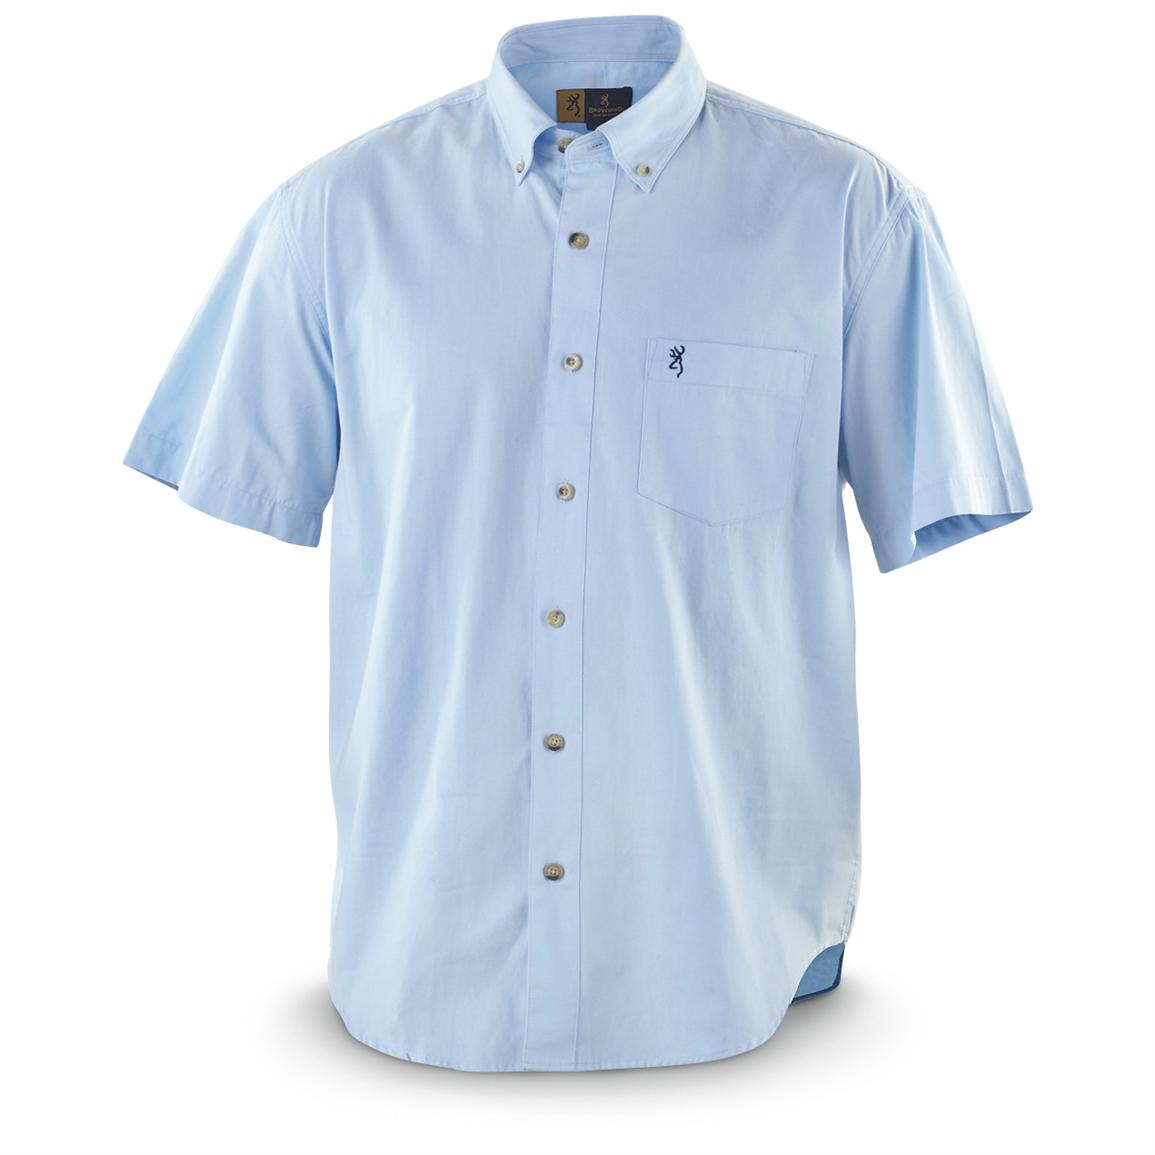 Browning wrinkle resistant short sleeved twill shirt Best wrinkle free dress shirts